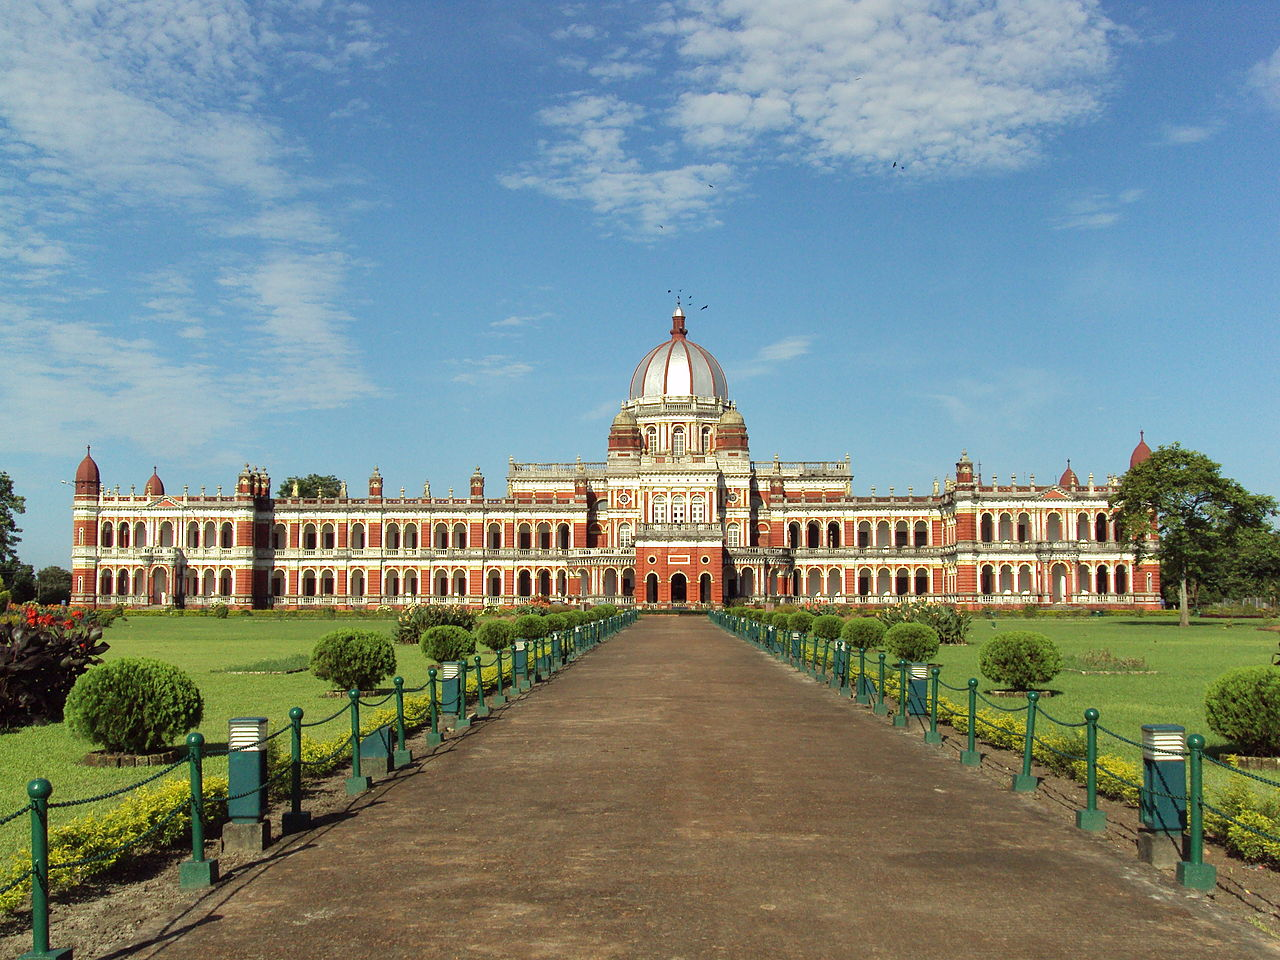 Cooch Behar Palace - Top Historical Monument to See in West Bengal